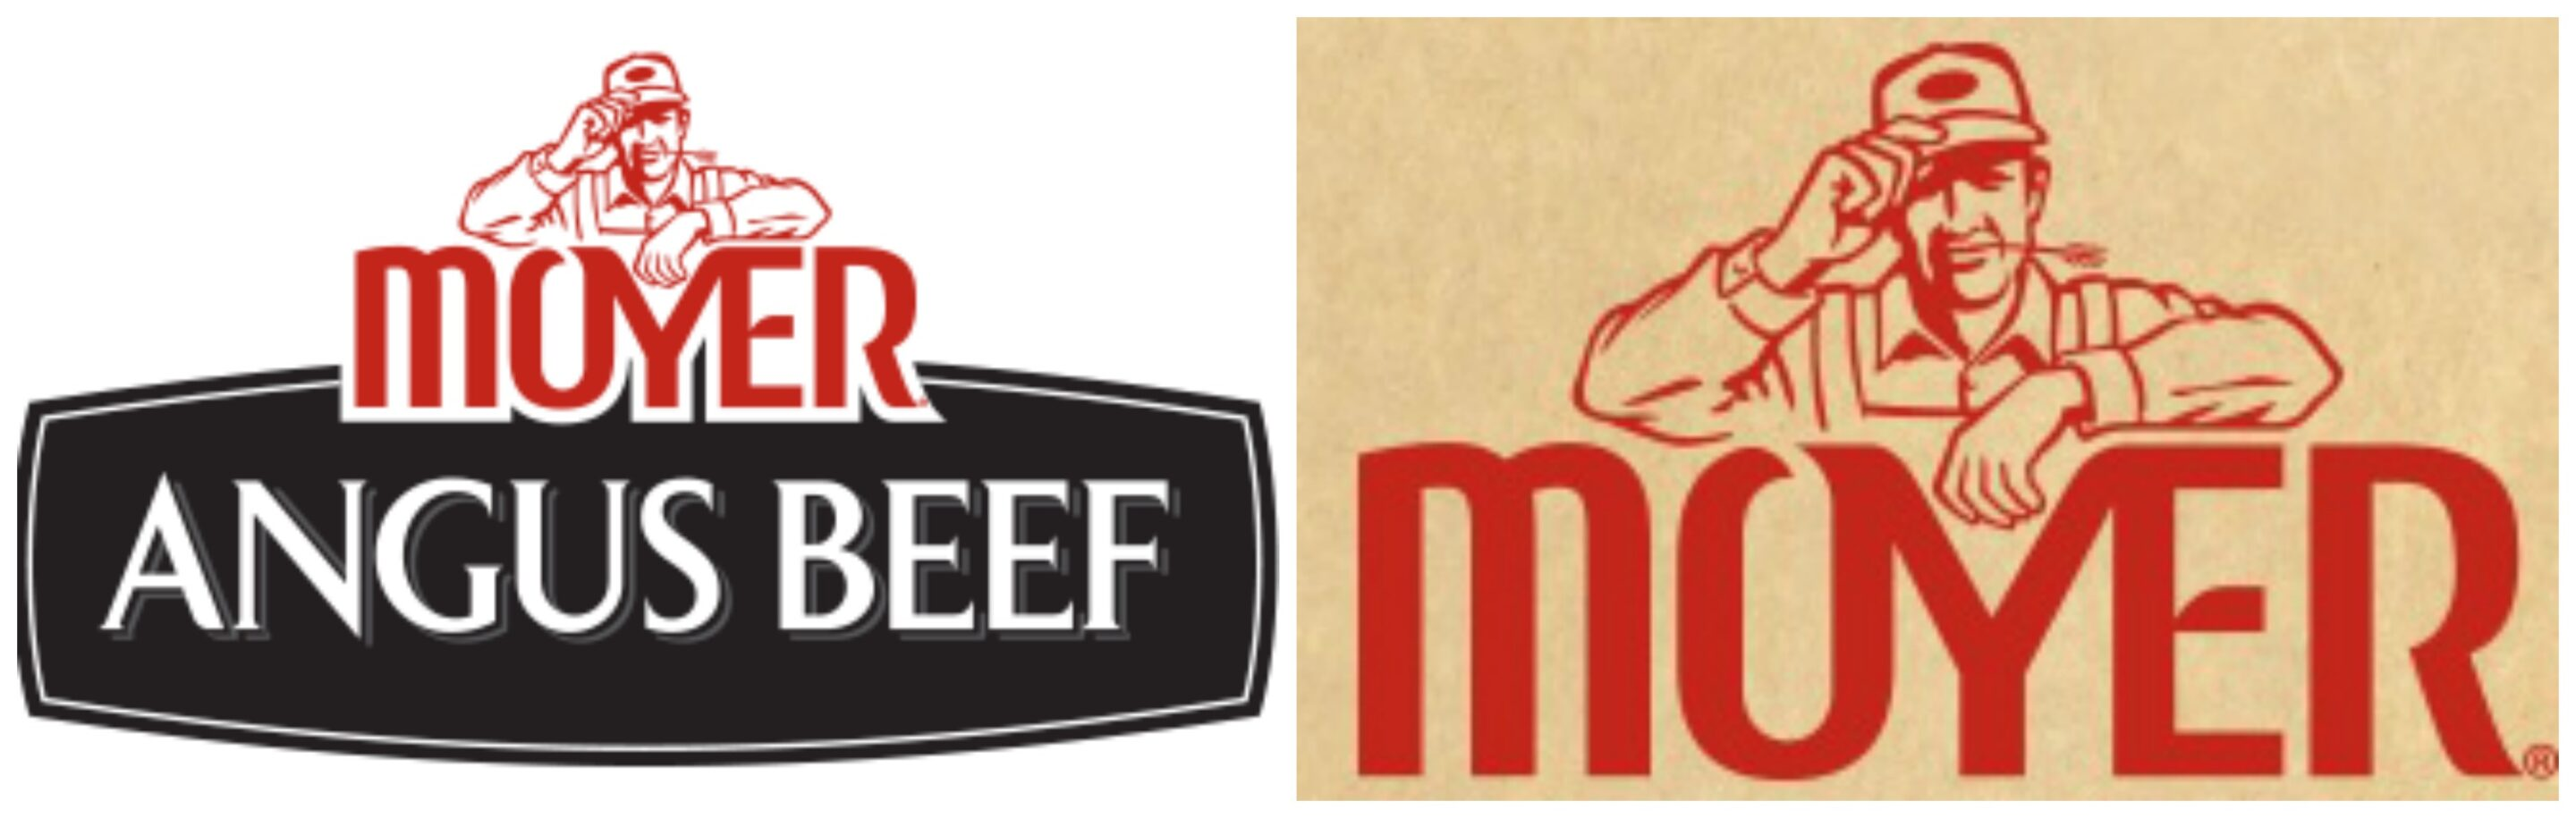 Moyer Beef Local Pennsylvania Beef Brand supporting farmers and communities since 1877